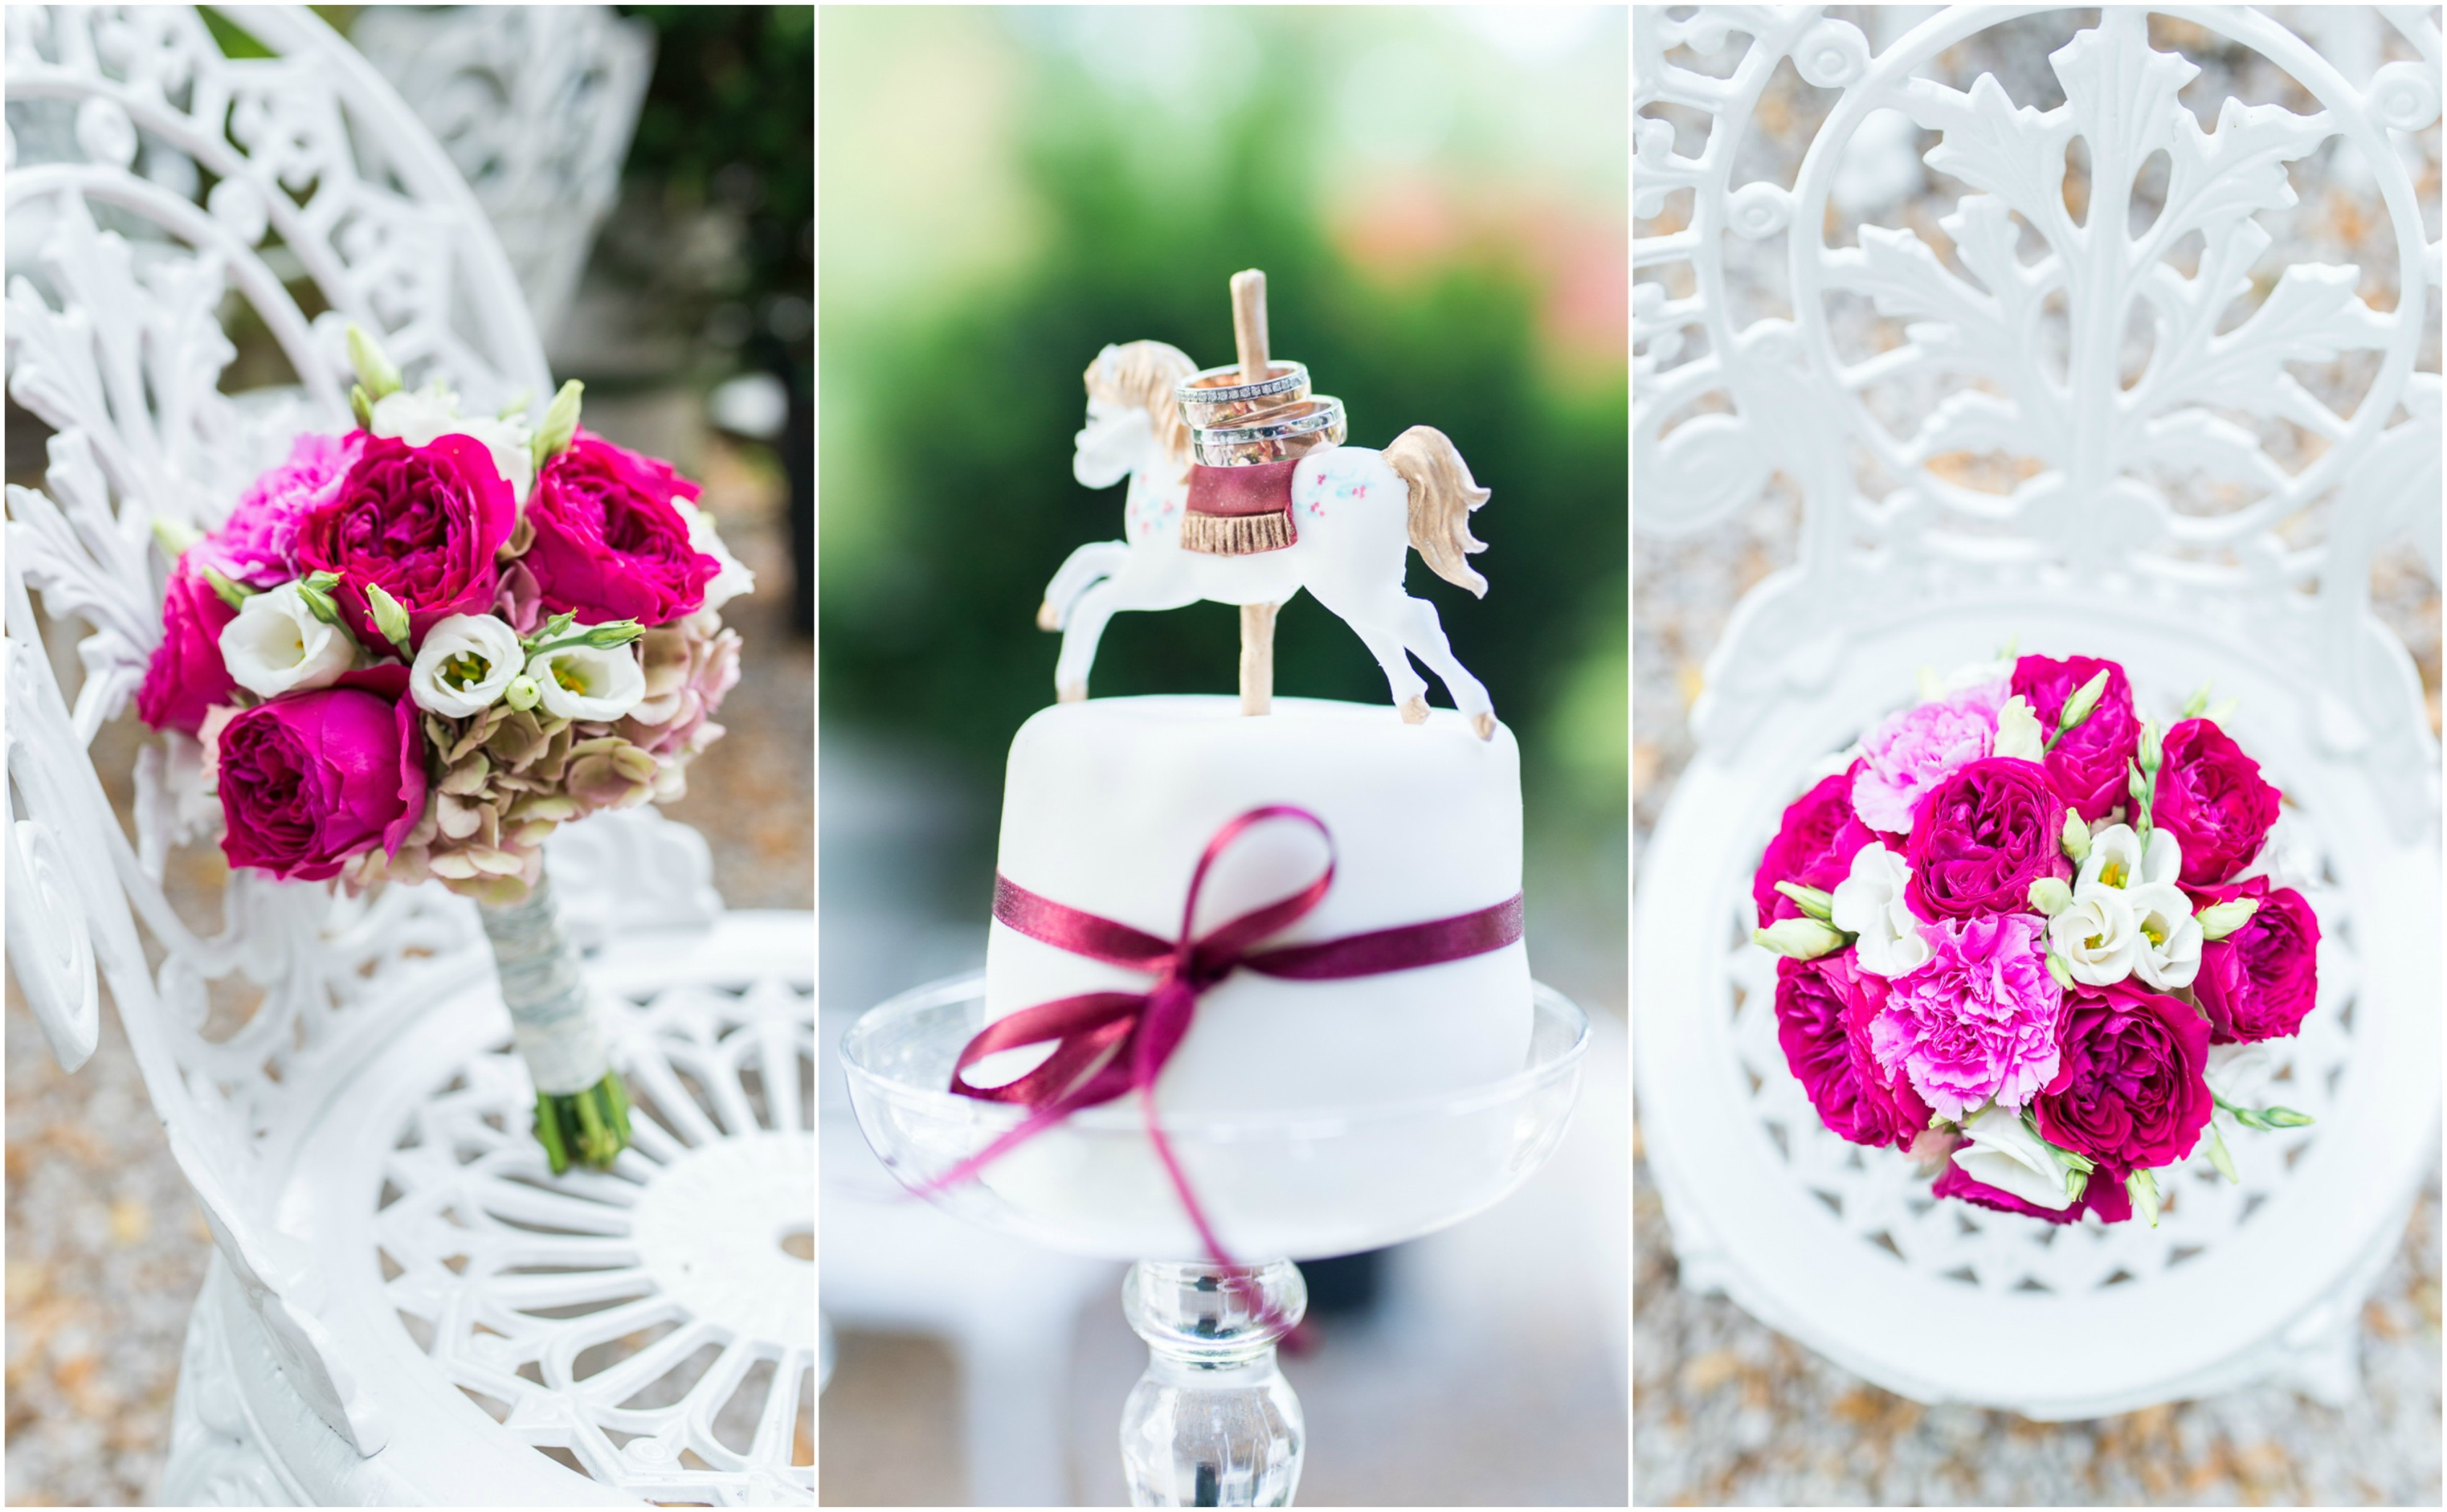 Styled Shoot, Candy Bar, Sweet Table, Blumen, Zuckerbäckerwerkstatt Ute Dittrich, Diana Dimitrova, La Primavera